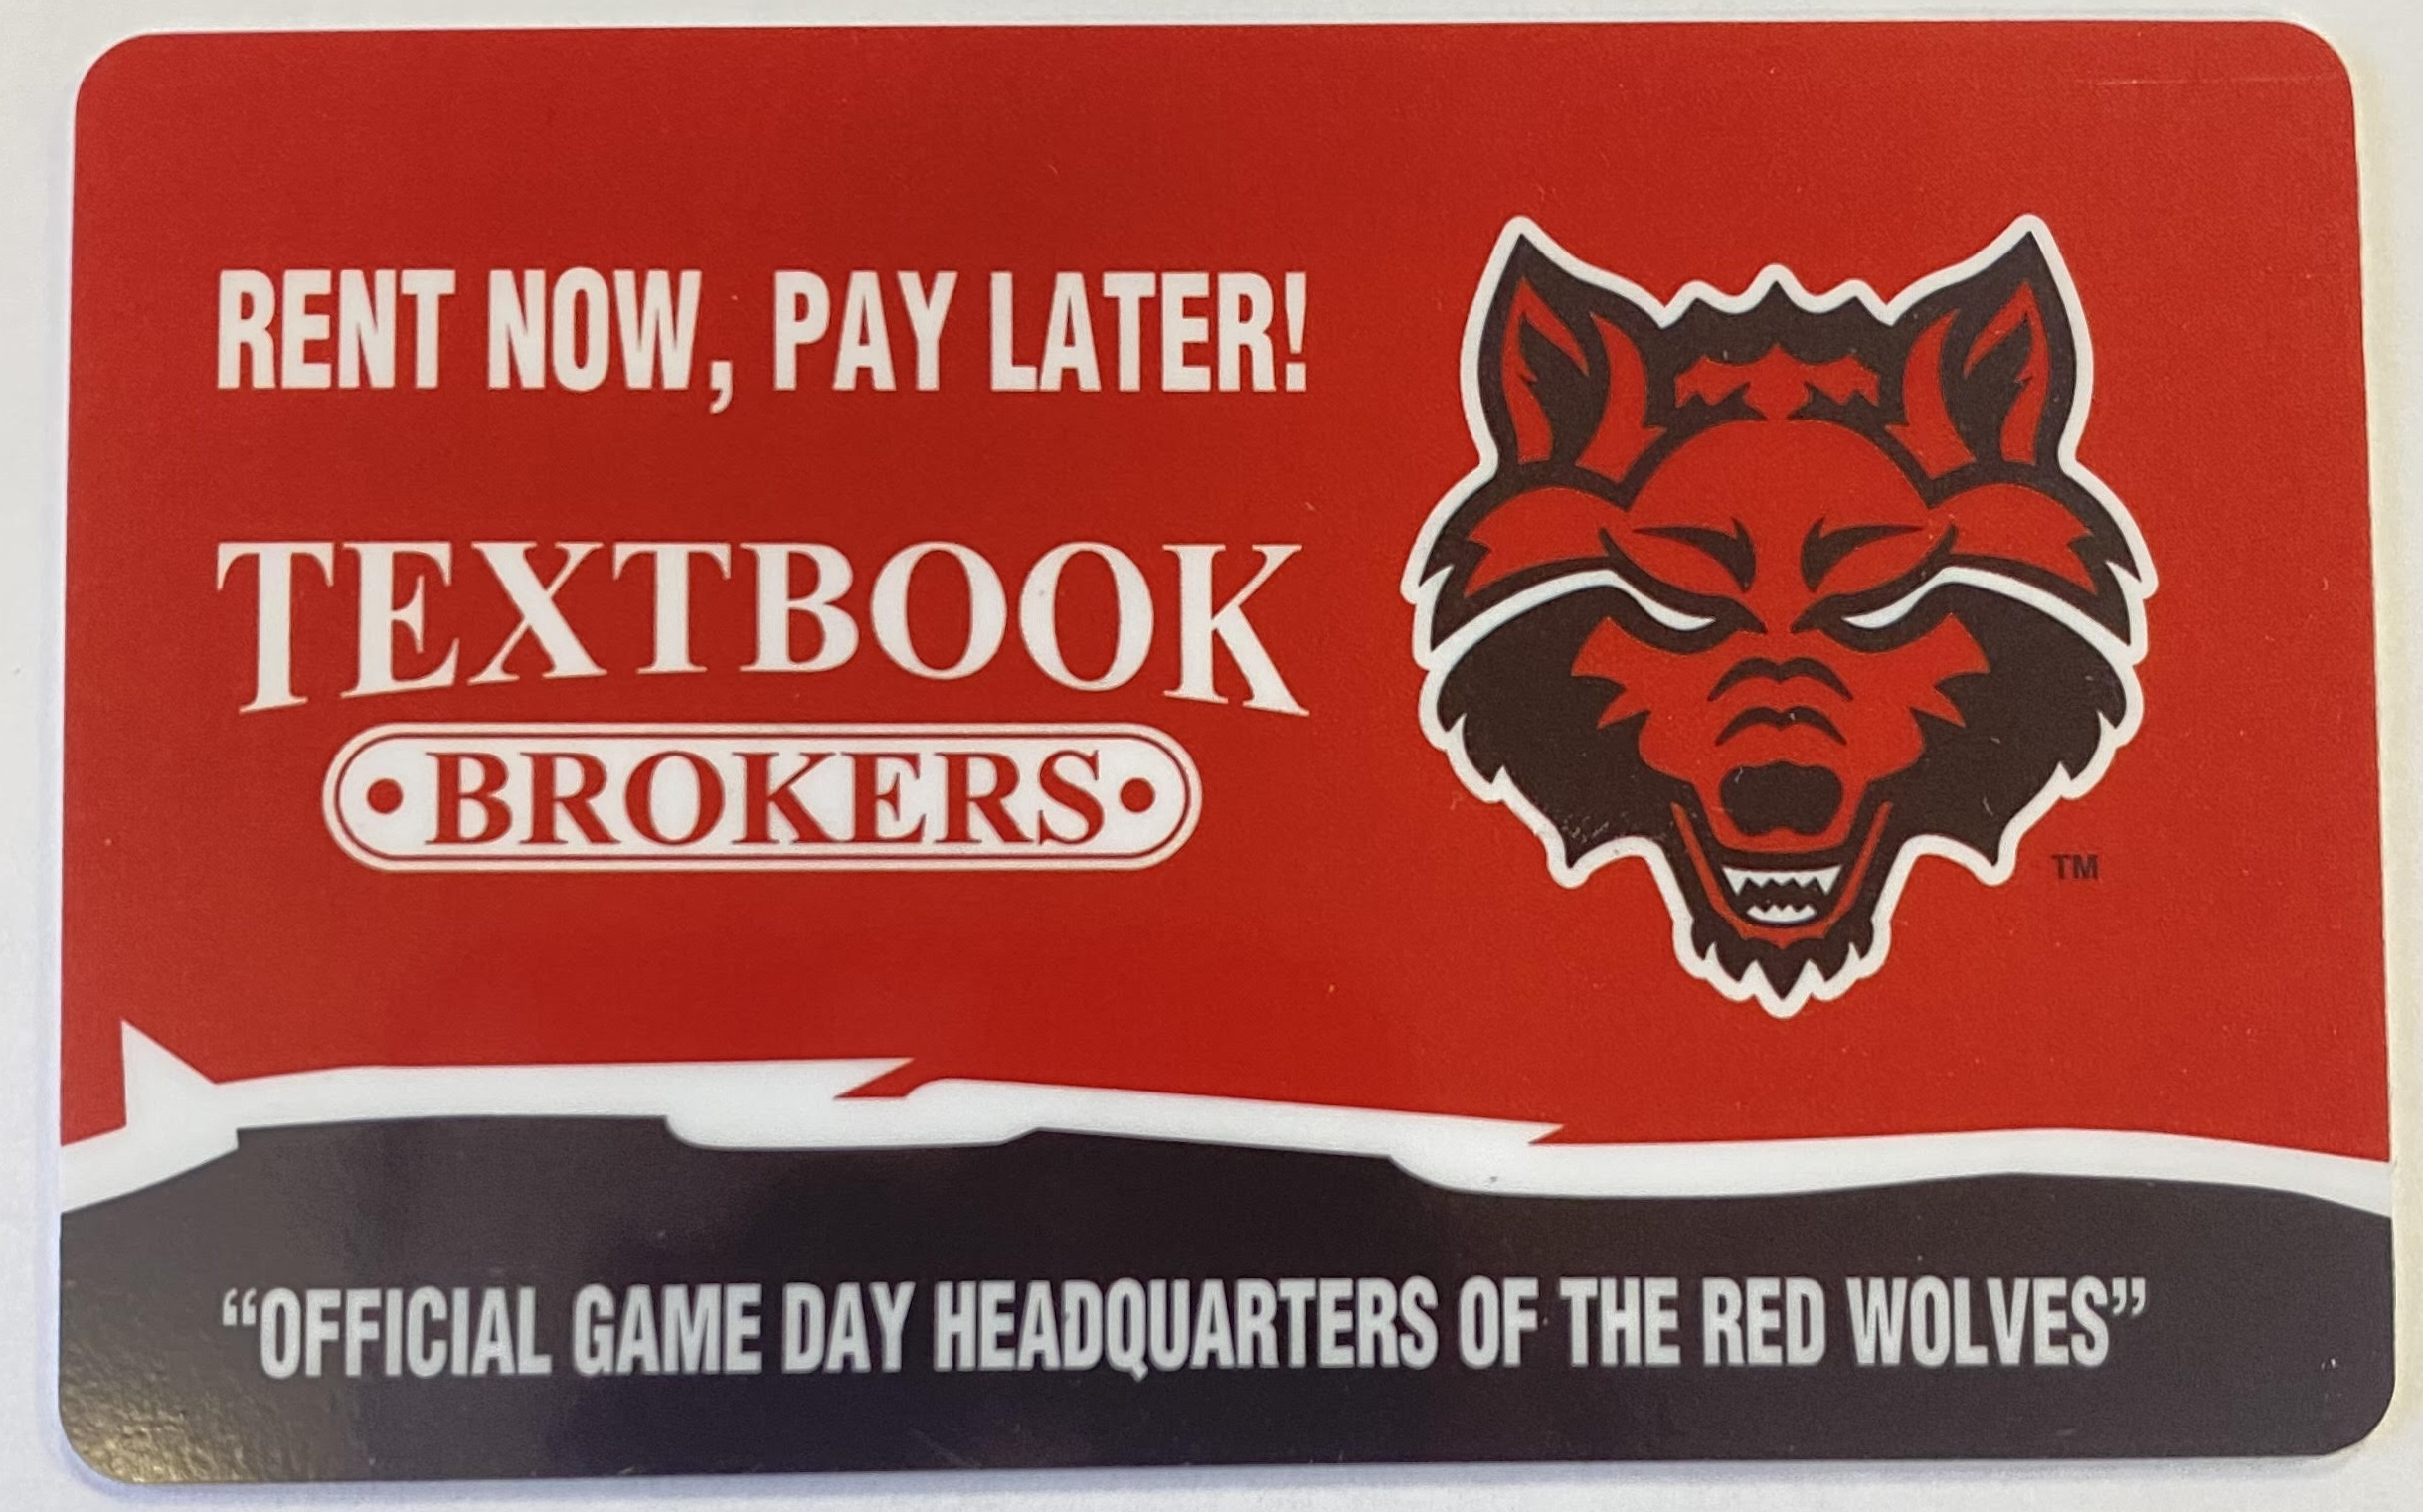 $40 Textbook Brokers Gift Card